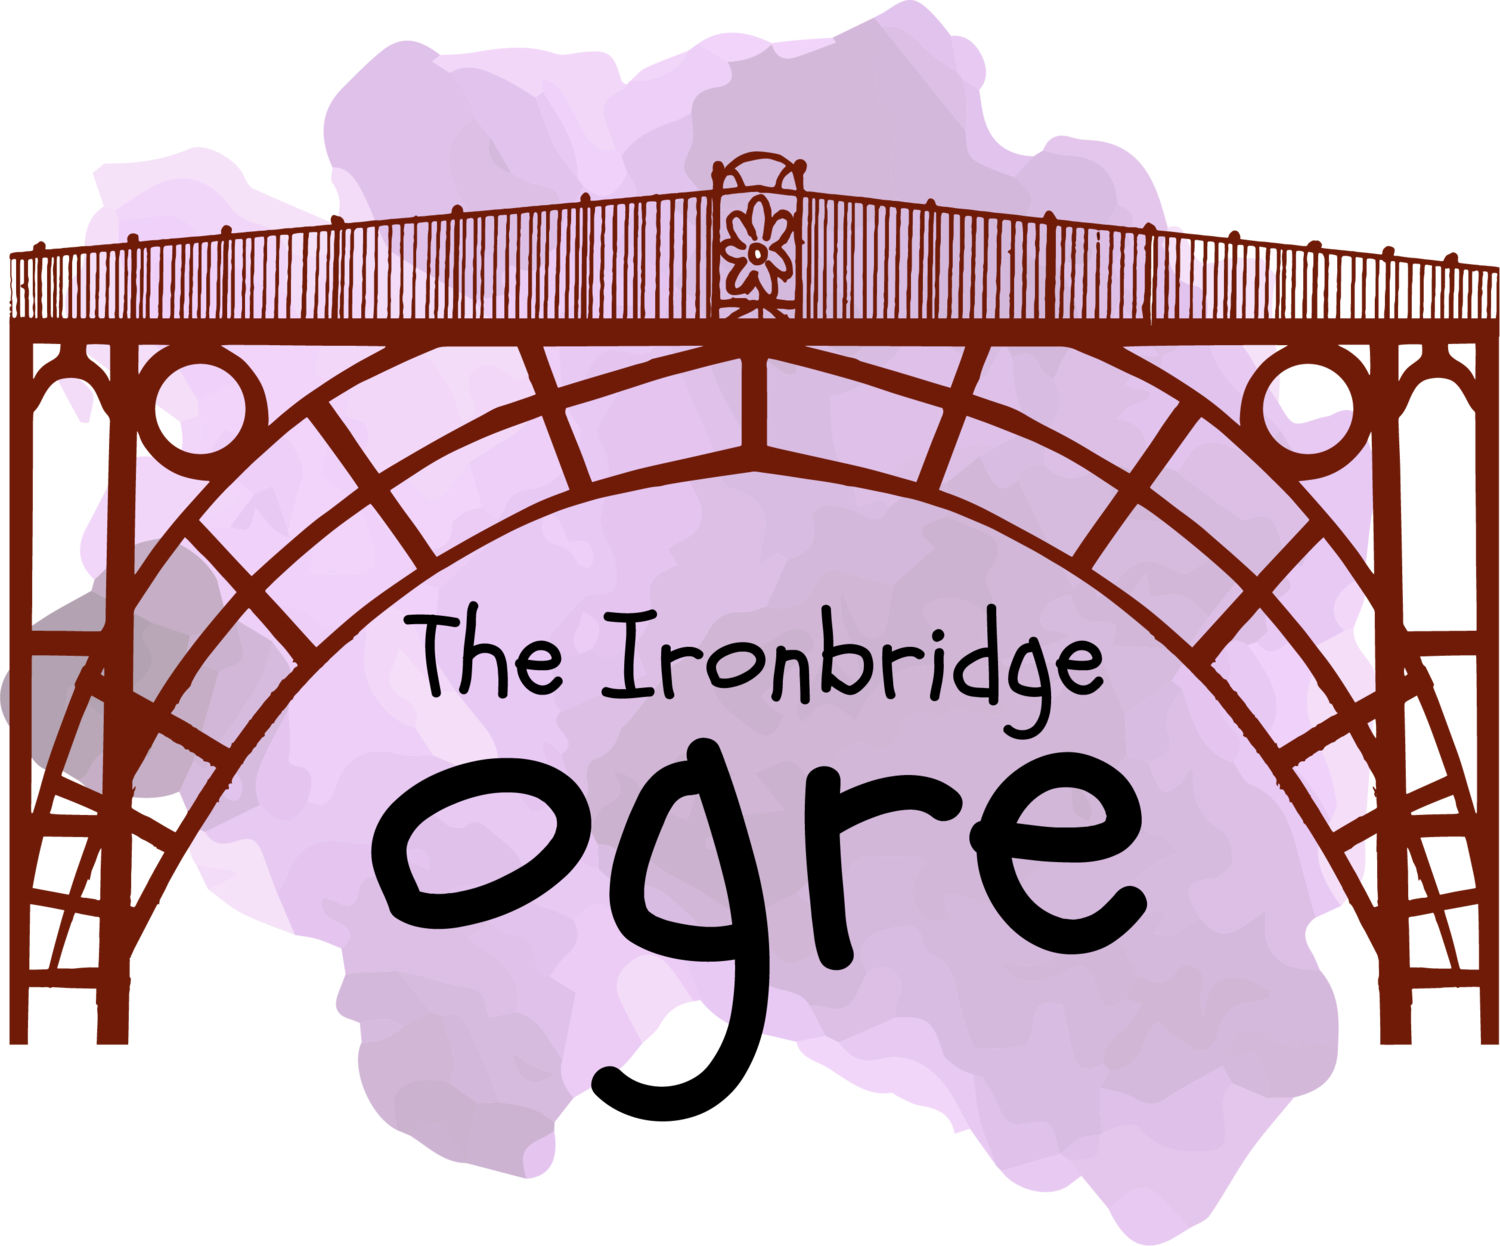 The Ironbridge Ogre